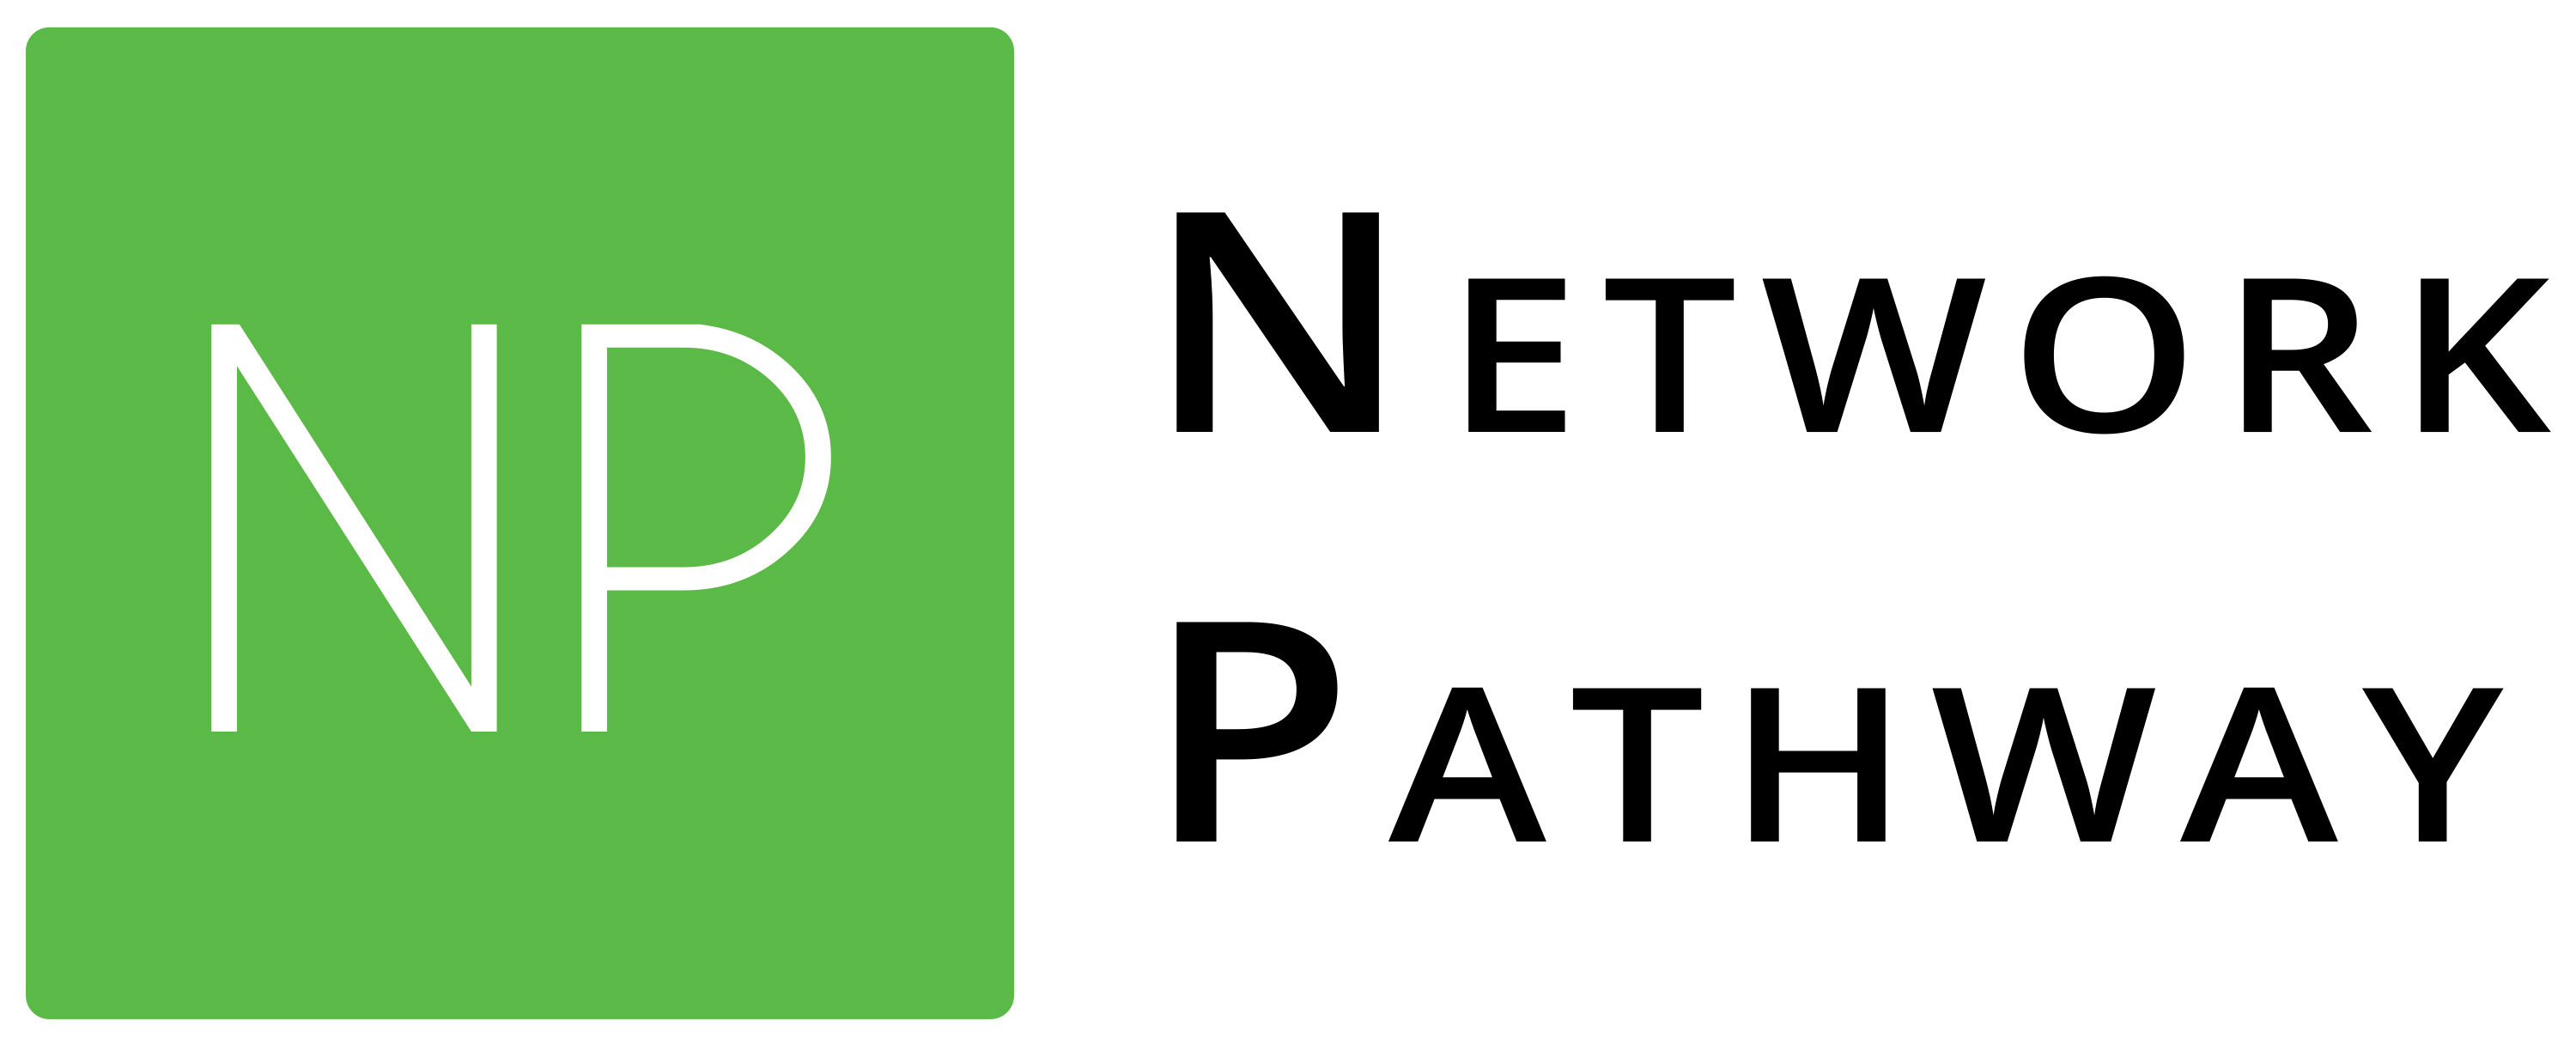 Visit the Network Pathway Website